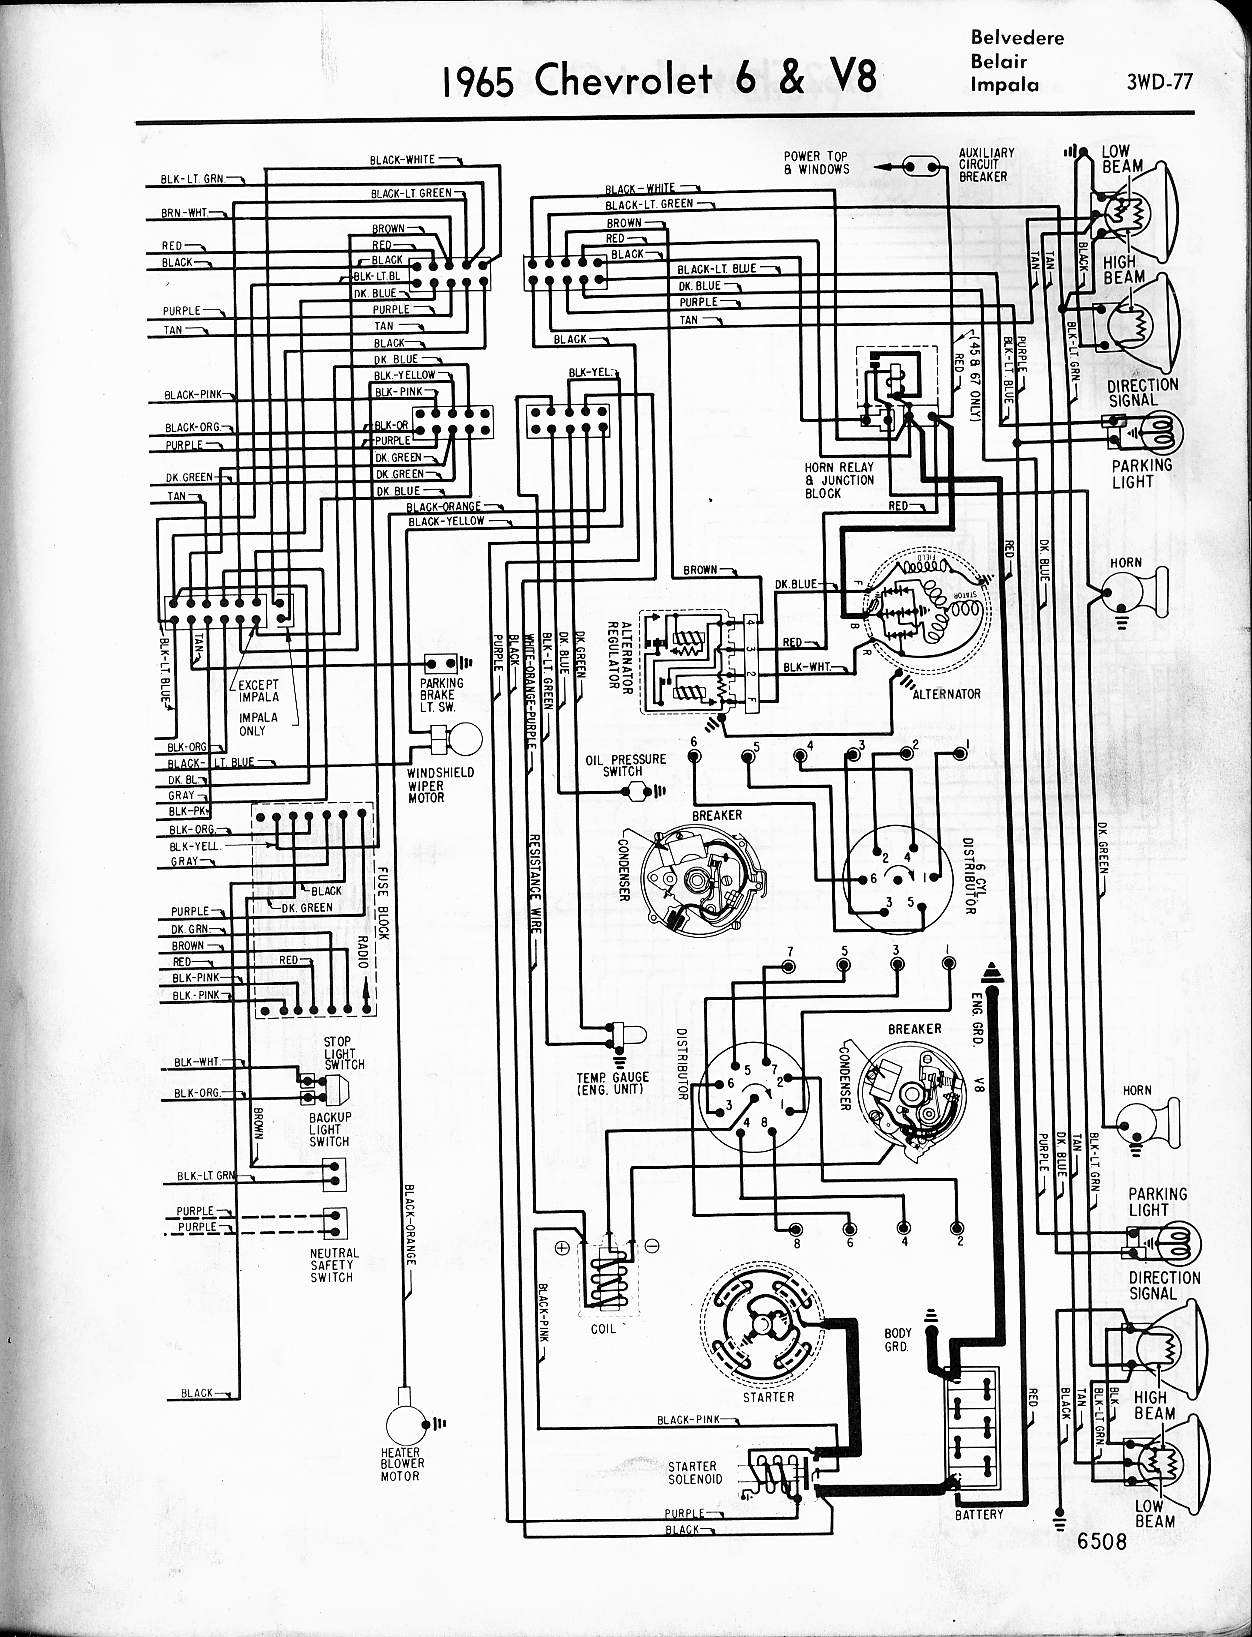 1965 Gm Stereo Wiring Diagram Free For You Buick Radio Diagrams 1970 Chevy Chevelle Get Lucerne Gmc